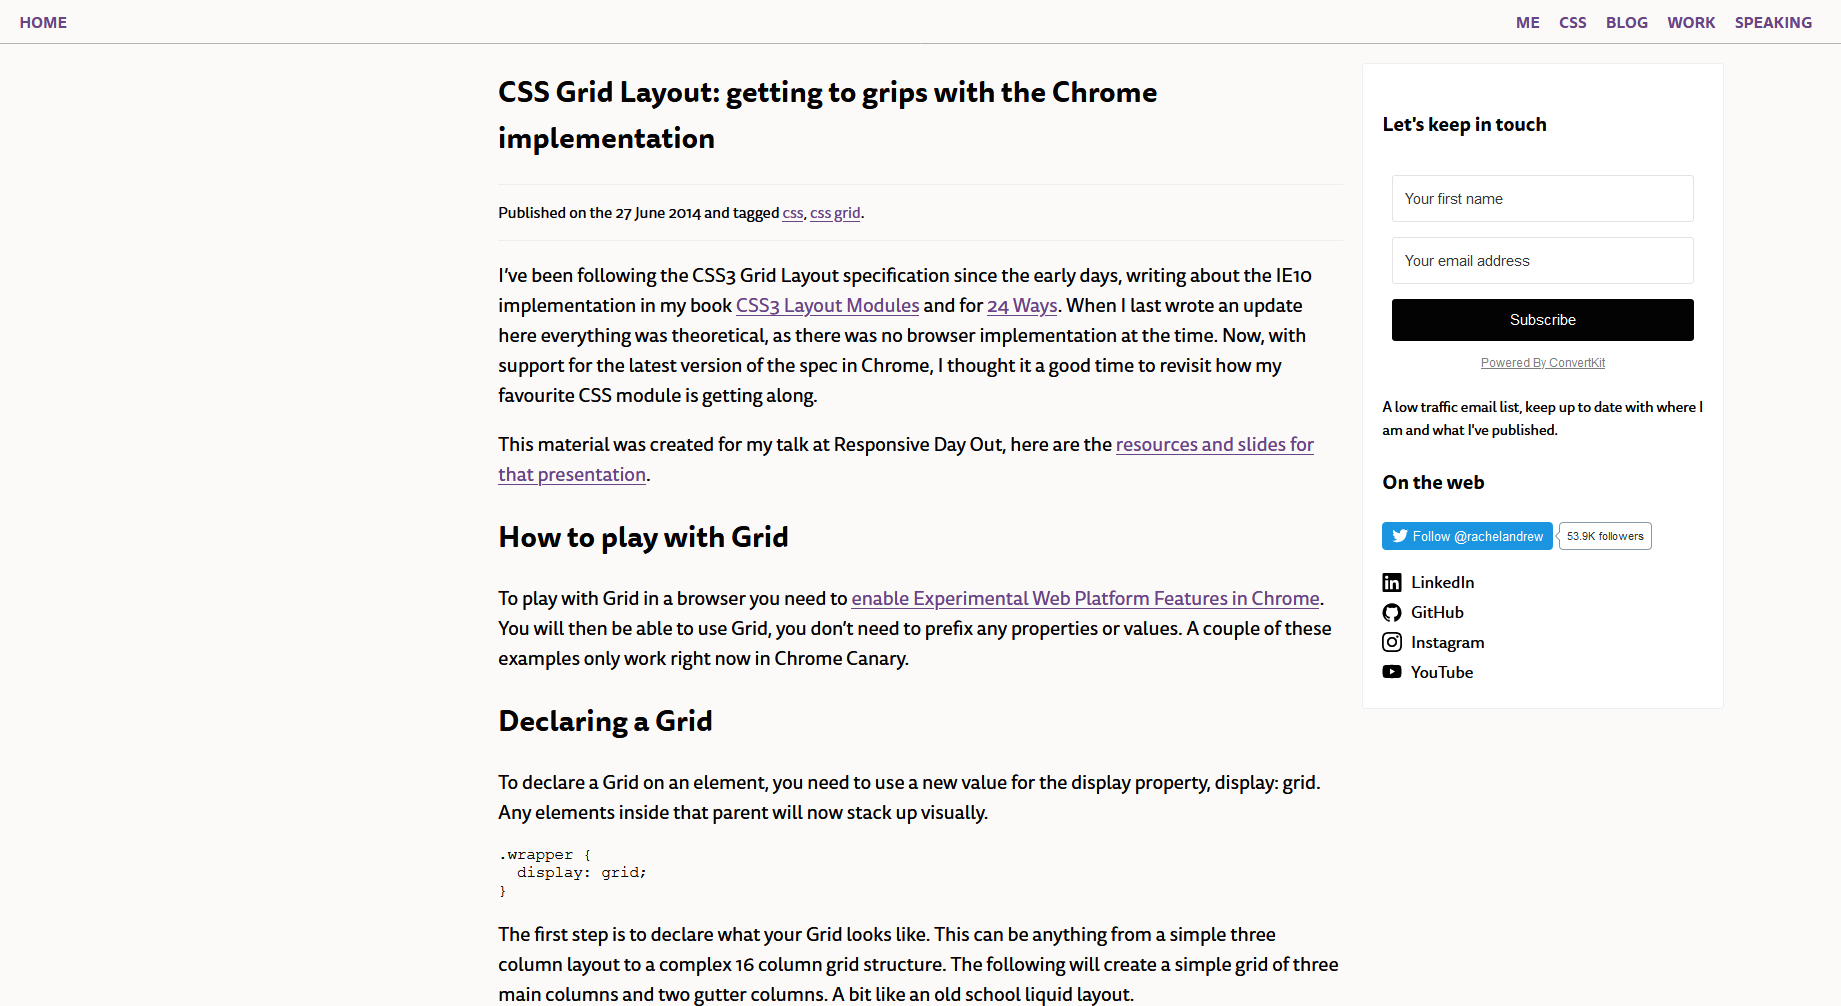 CSS Grid Layout: Getting to Grips With the Chrome Implementation